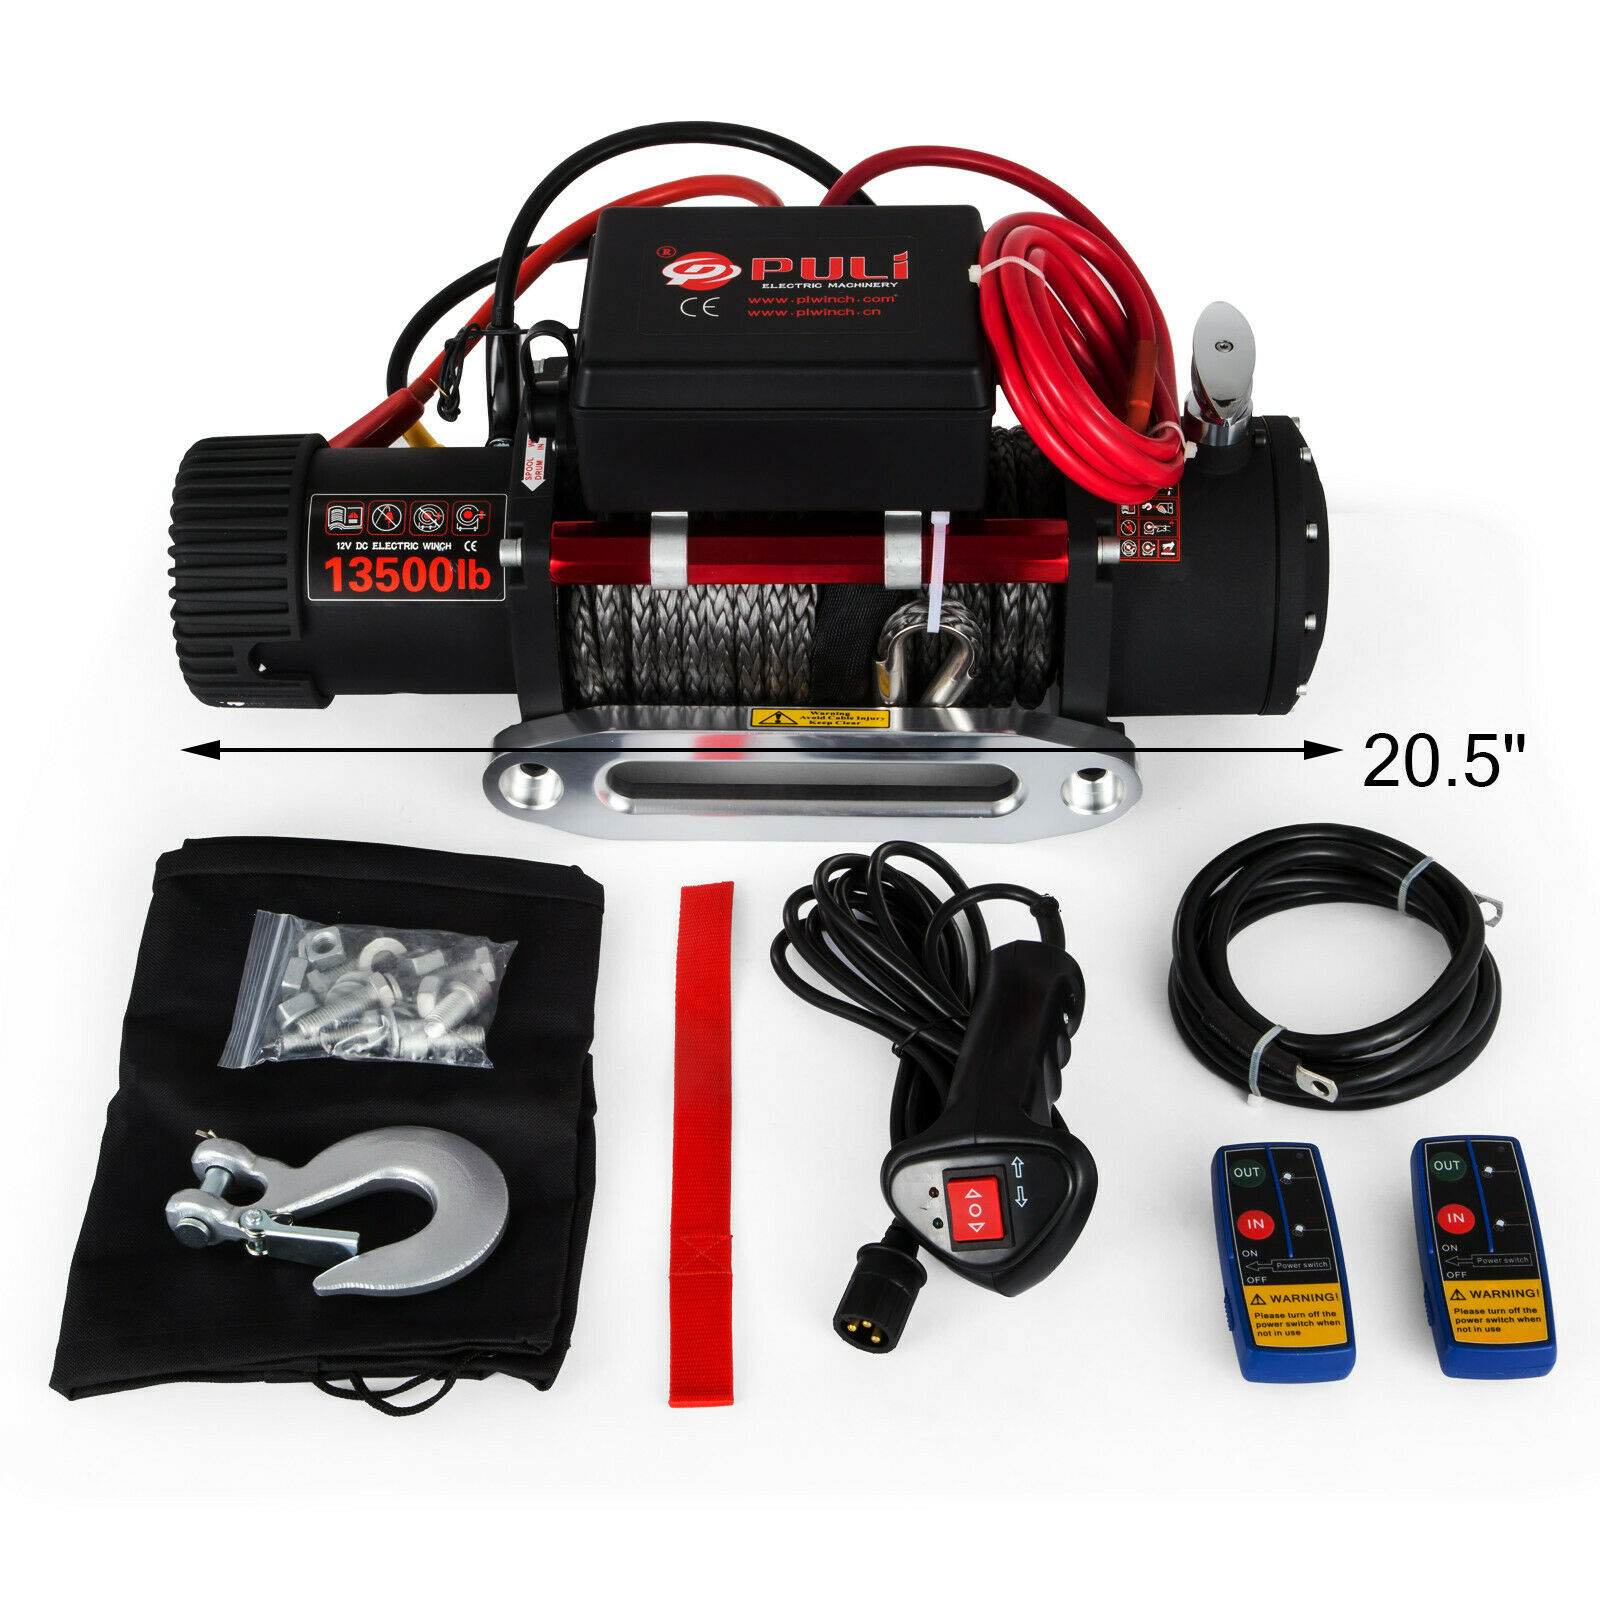 13500LBS 12V Electric Synthetic Rope Winch 6123.5Kg Gear Train Roller Fairlead